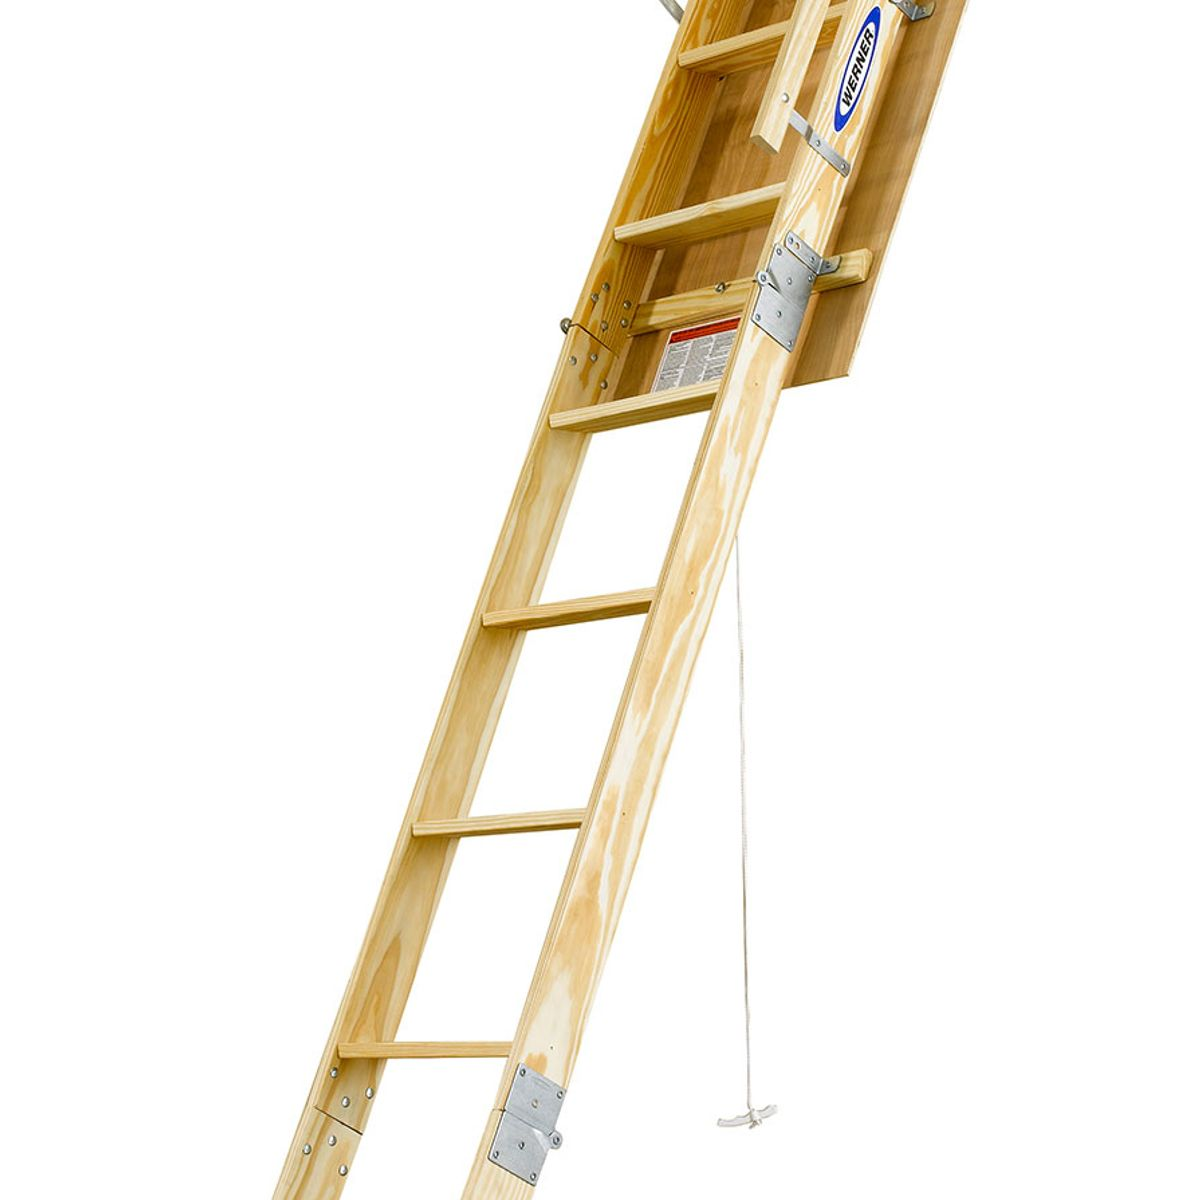 Platform Ladder Bunnings W2210 Attic Ladders Werner Us